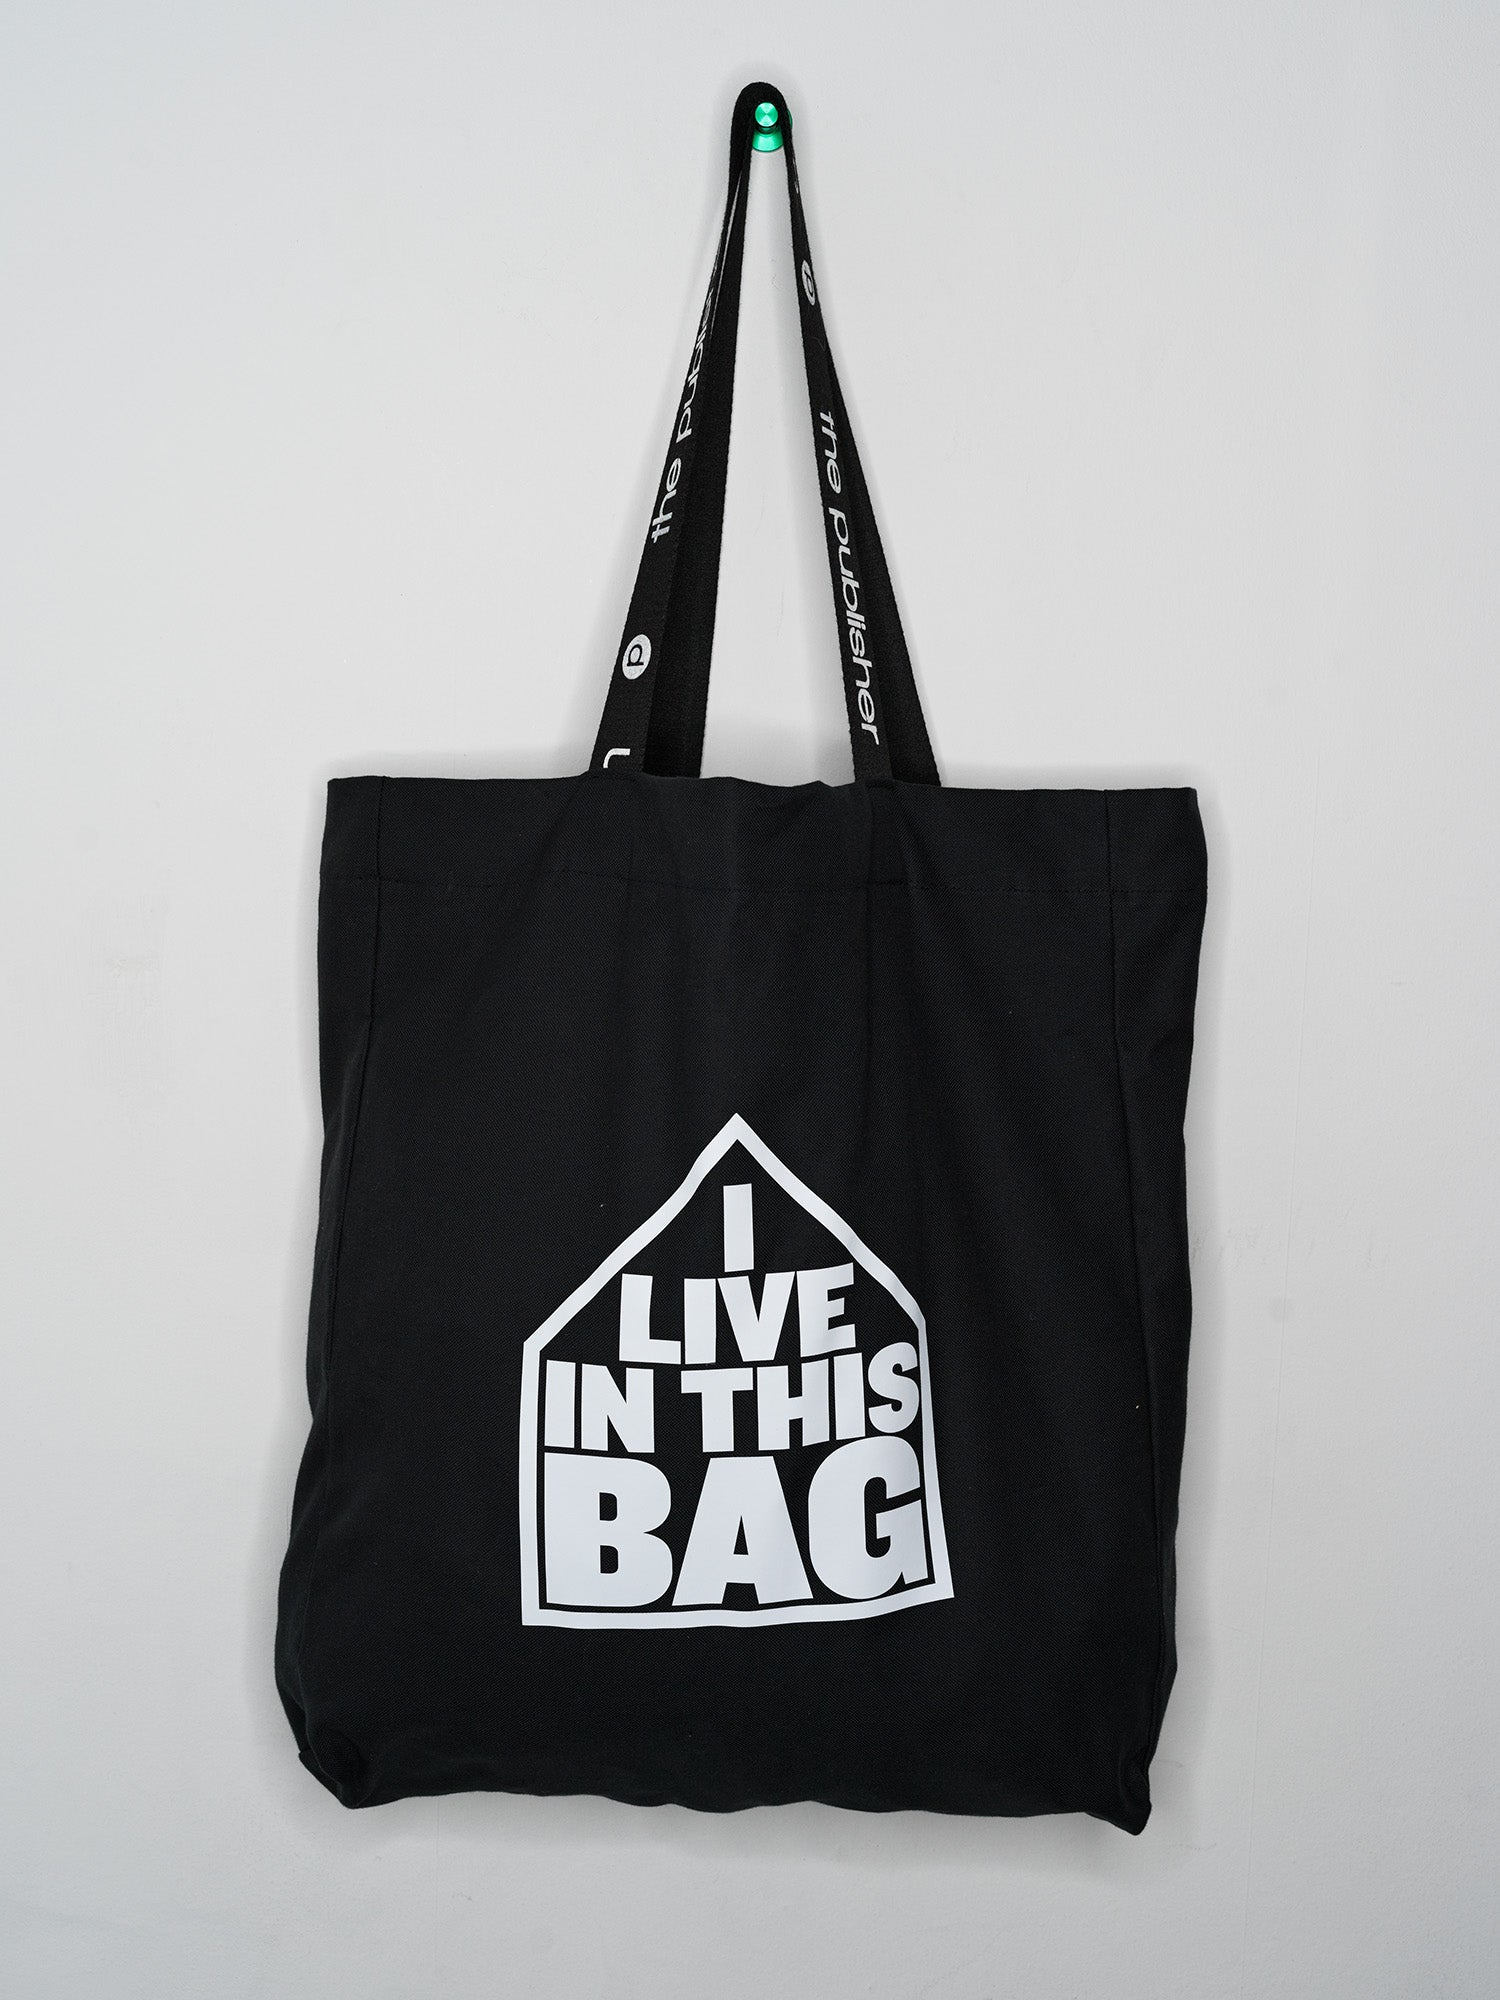 The Publisher // I live in this bag